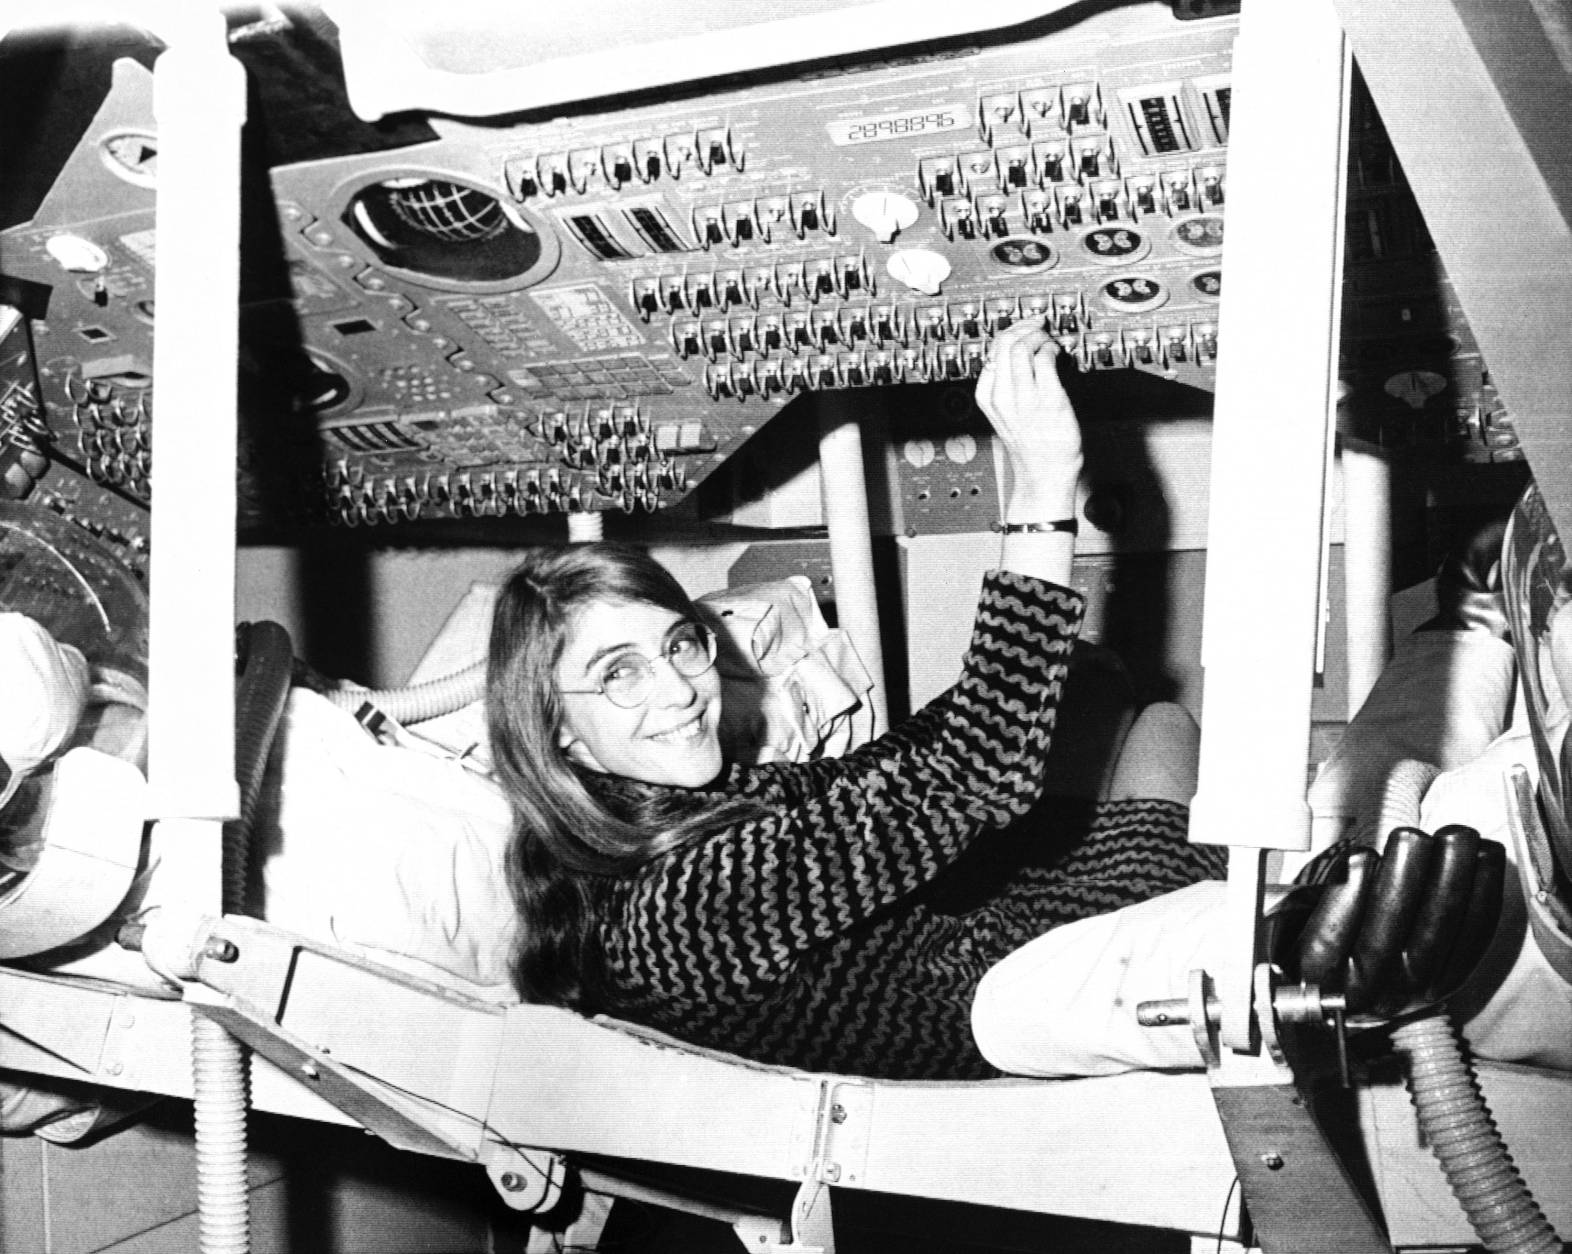 Margaret Hamilton of Cambridge, Mass., mathematic and computer programmer at the MIT Instrumentation Laboratory, sits in mock up of Apollo command module on display at the Cambridge school, Nov. 25, 1969 where she headed group that programmed Intrepid's pinpoint landing in the Sea of Storms on the moon. (AP Photo)